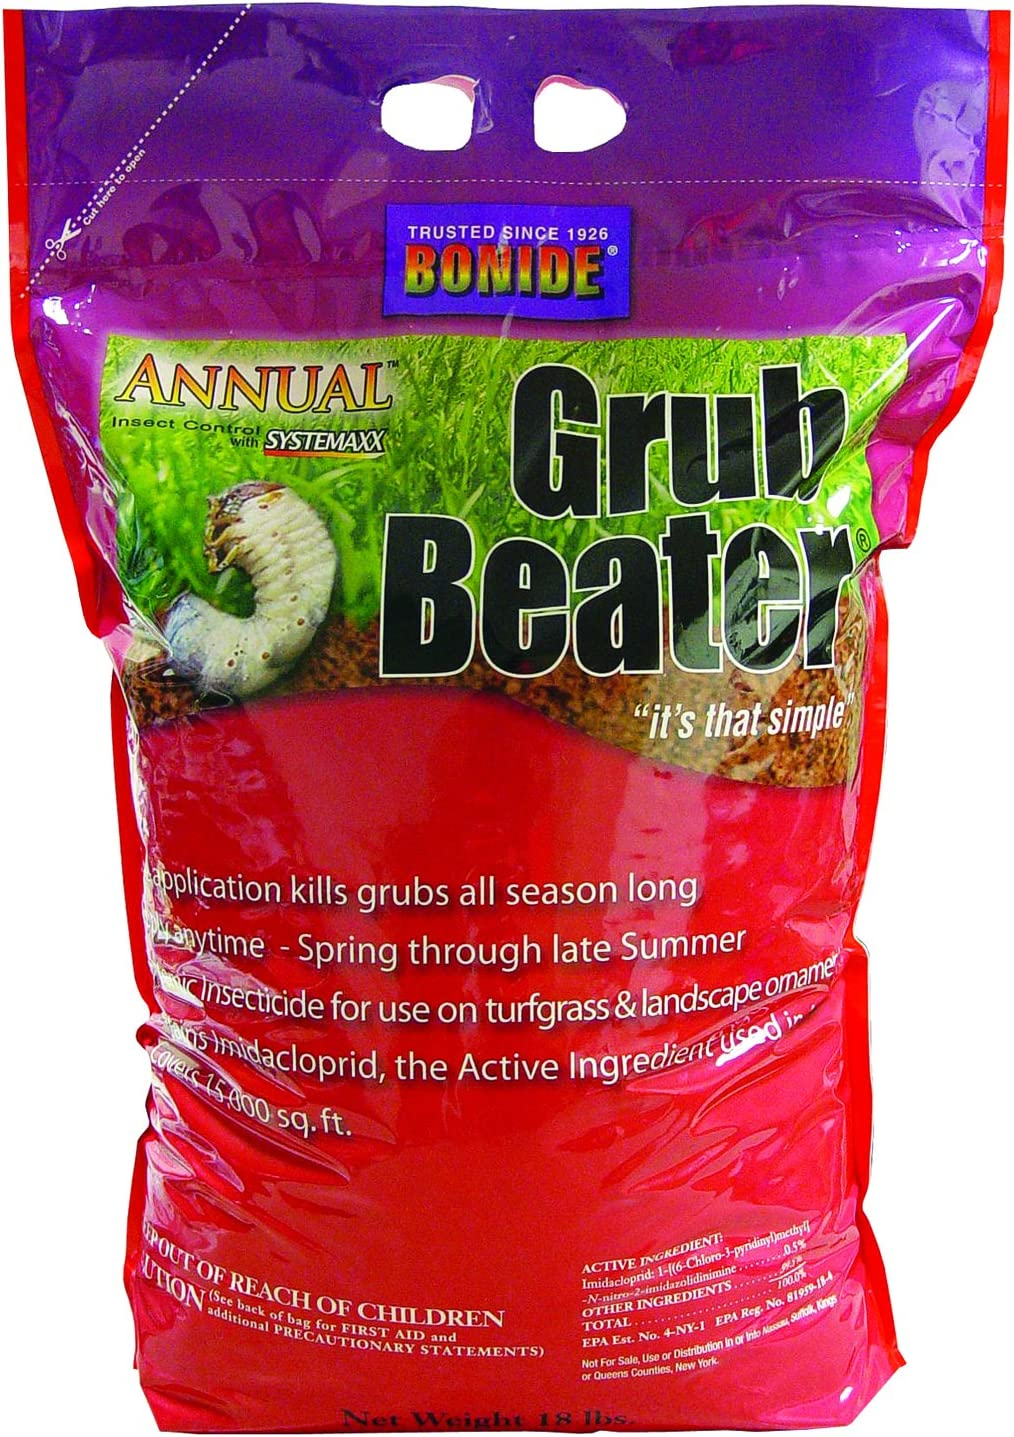 Bonide Annual Grub Killer